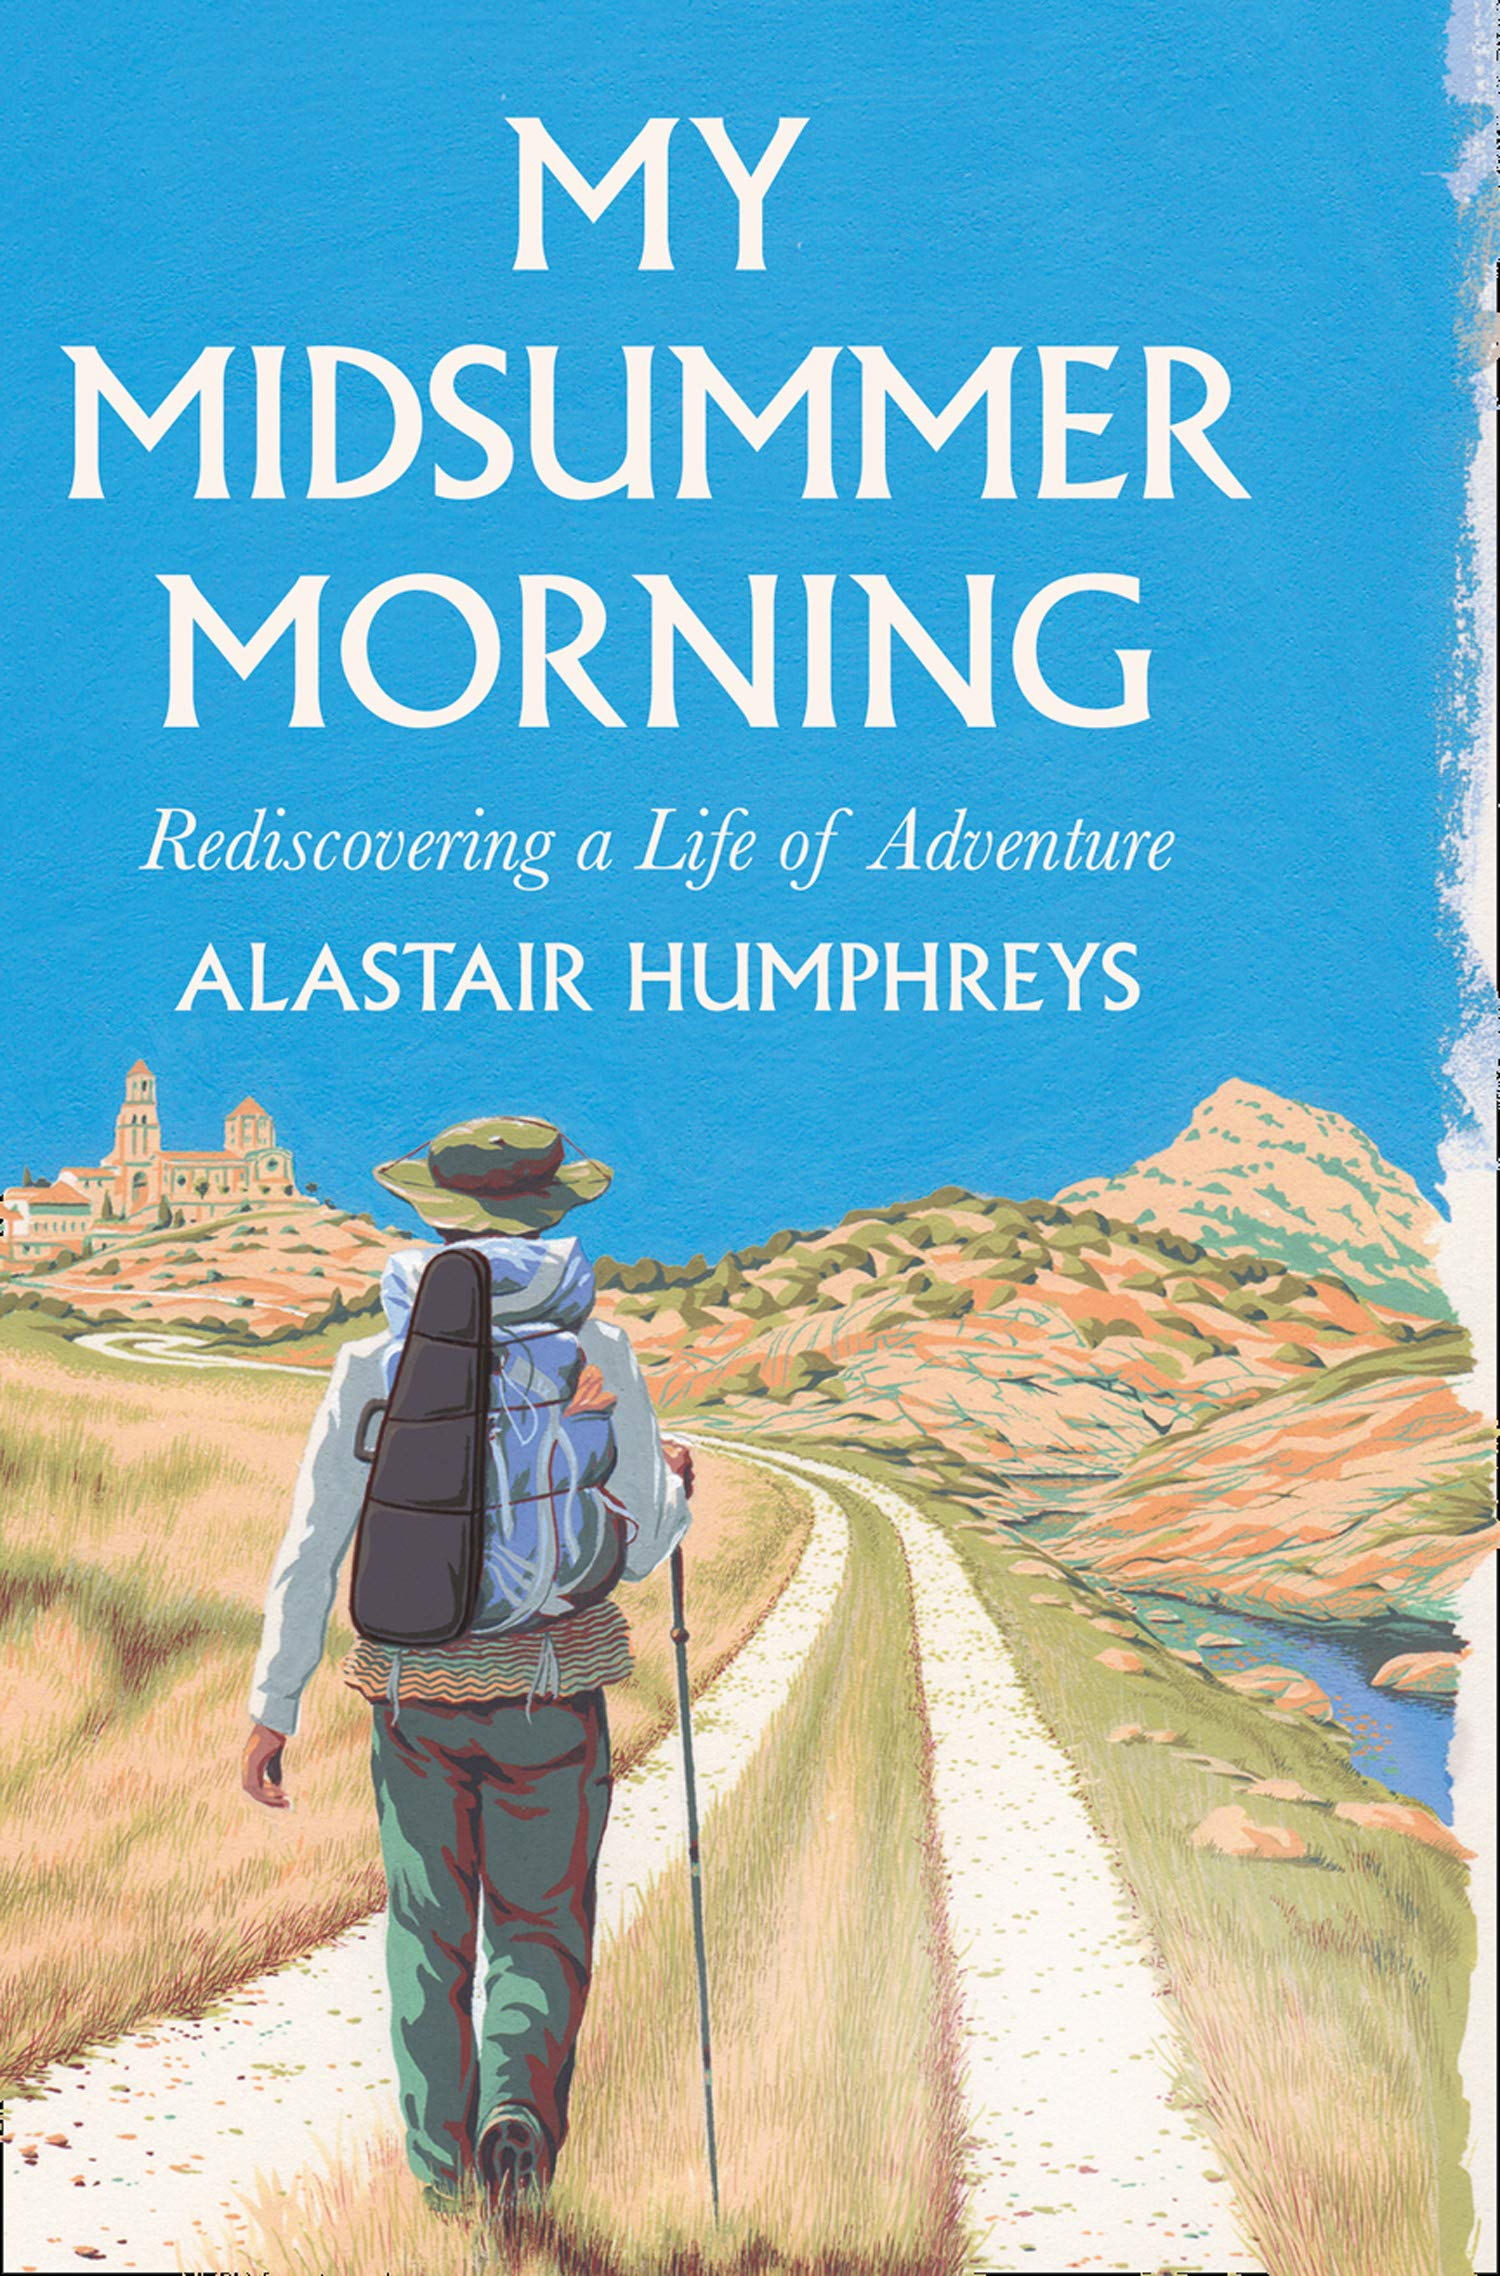 Rediscovering Photography On Summer >> My Midsummer Morning Rediscovering A Life Of Adventure Amazon Co